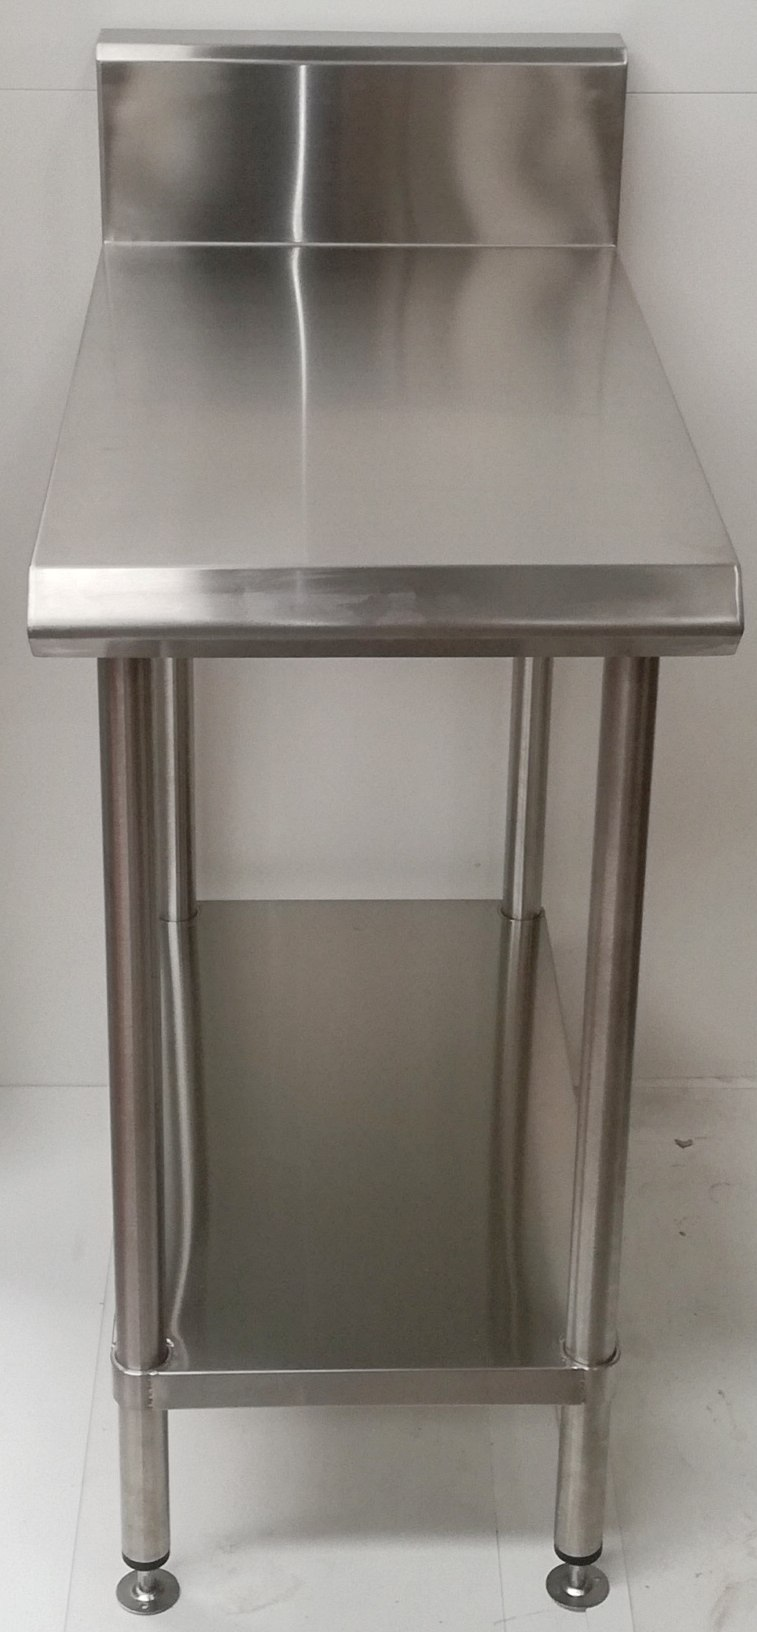 Stainless Steel Infill Bench Blue Seal Profile 450mm - New - $585 + GST